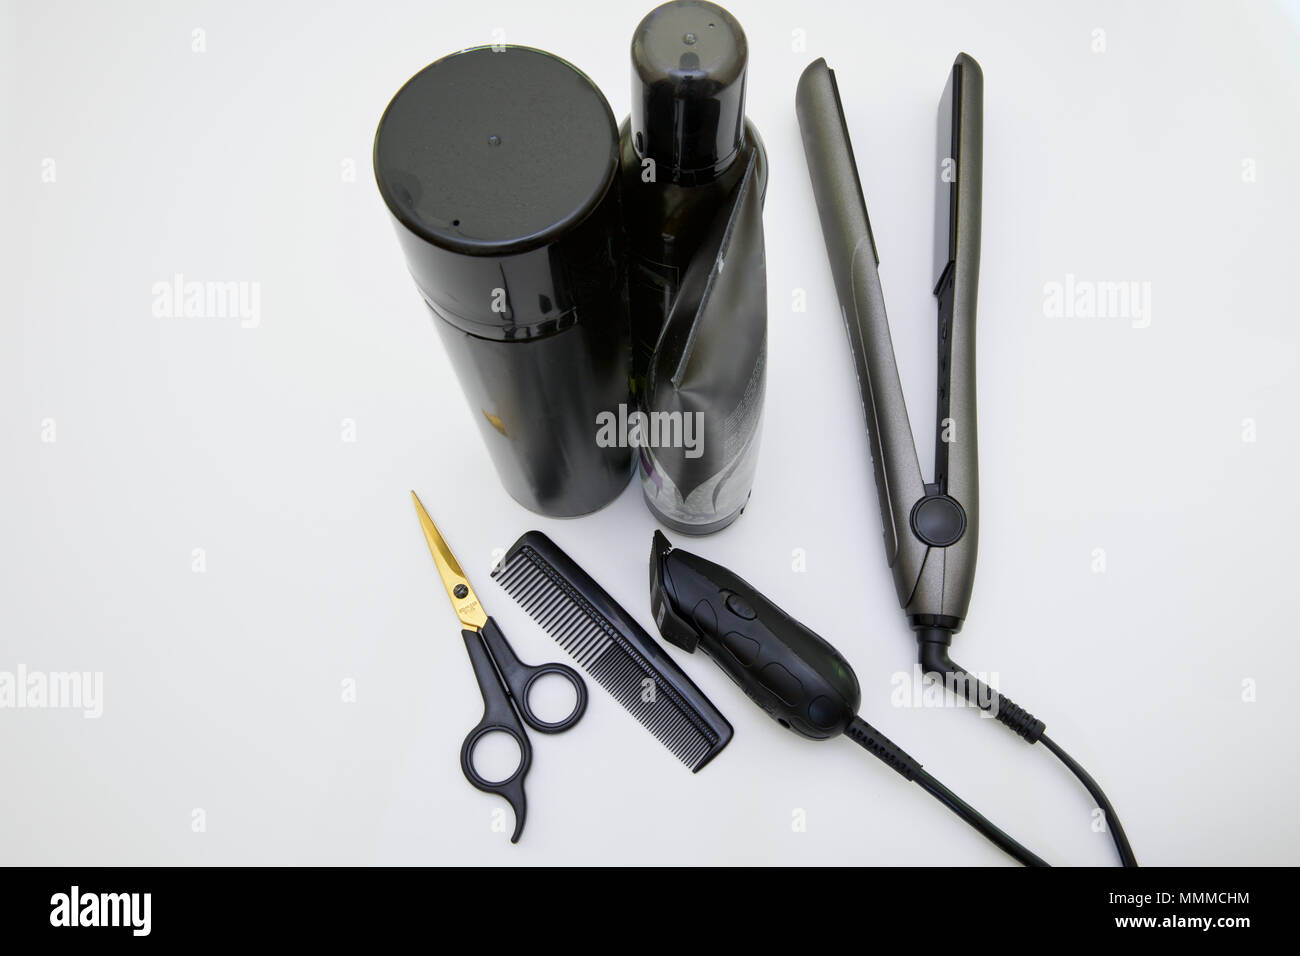 hairstylist tools stock photos hairstylist tools stock images alamy